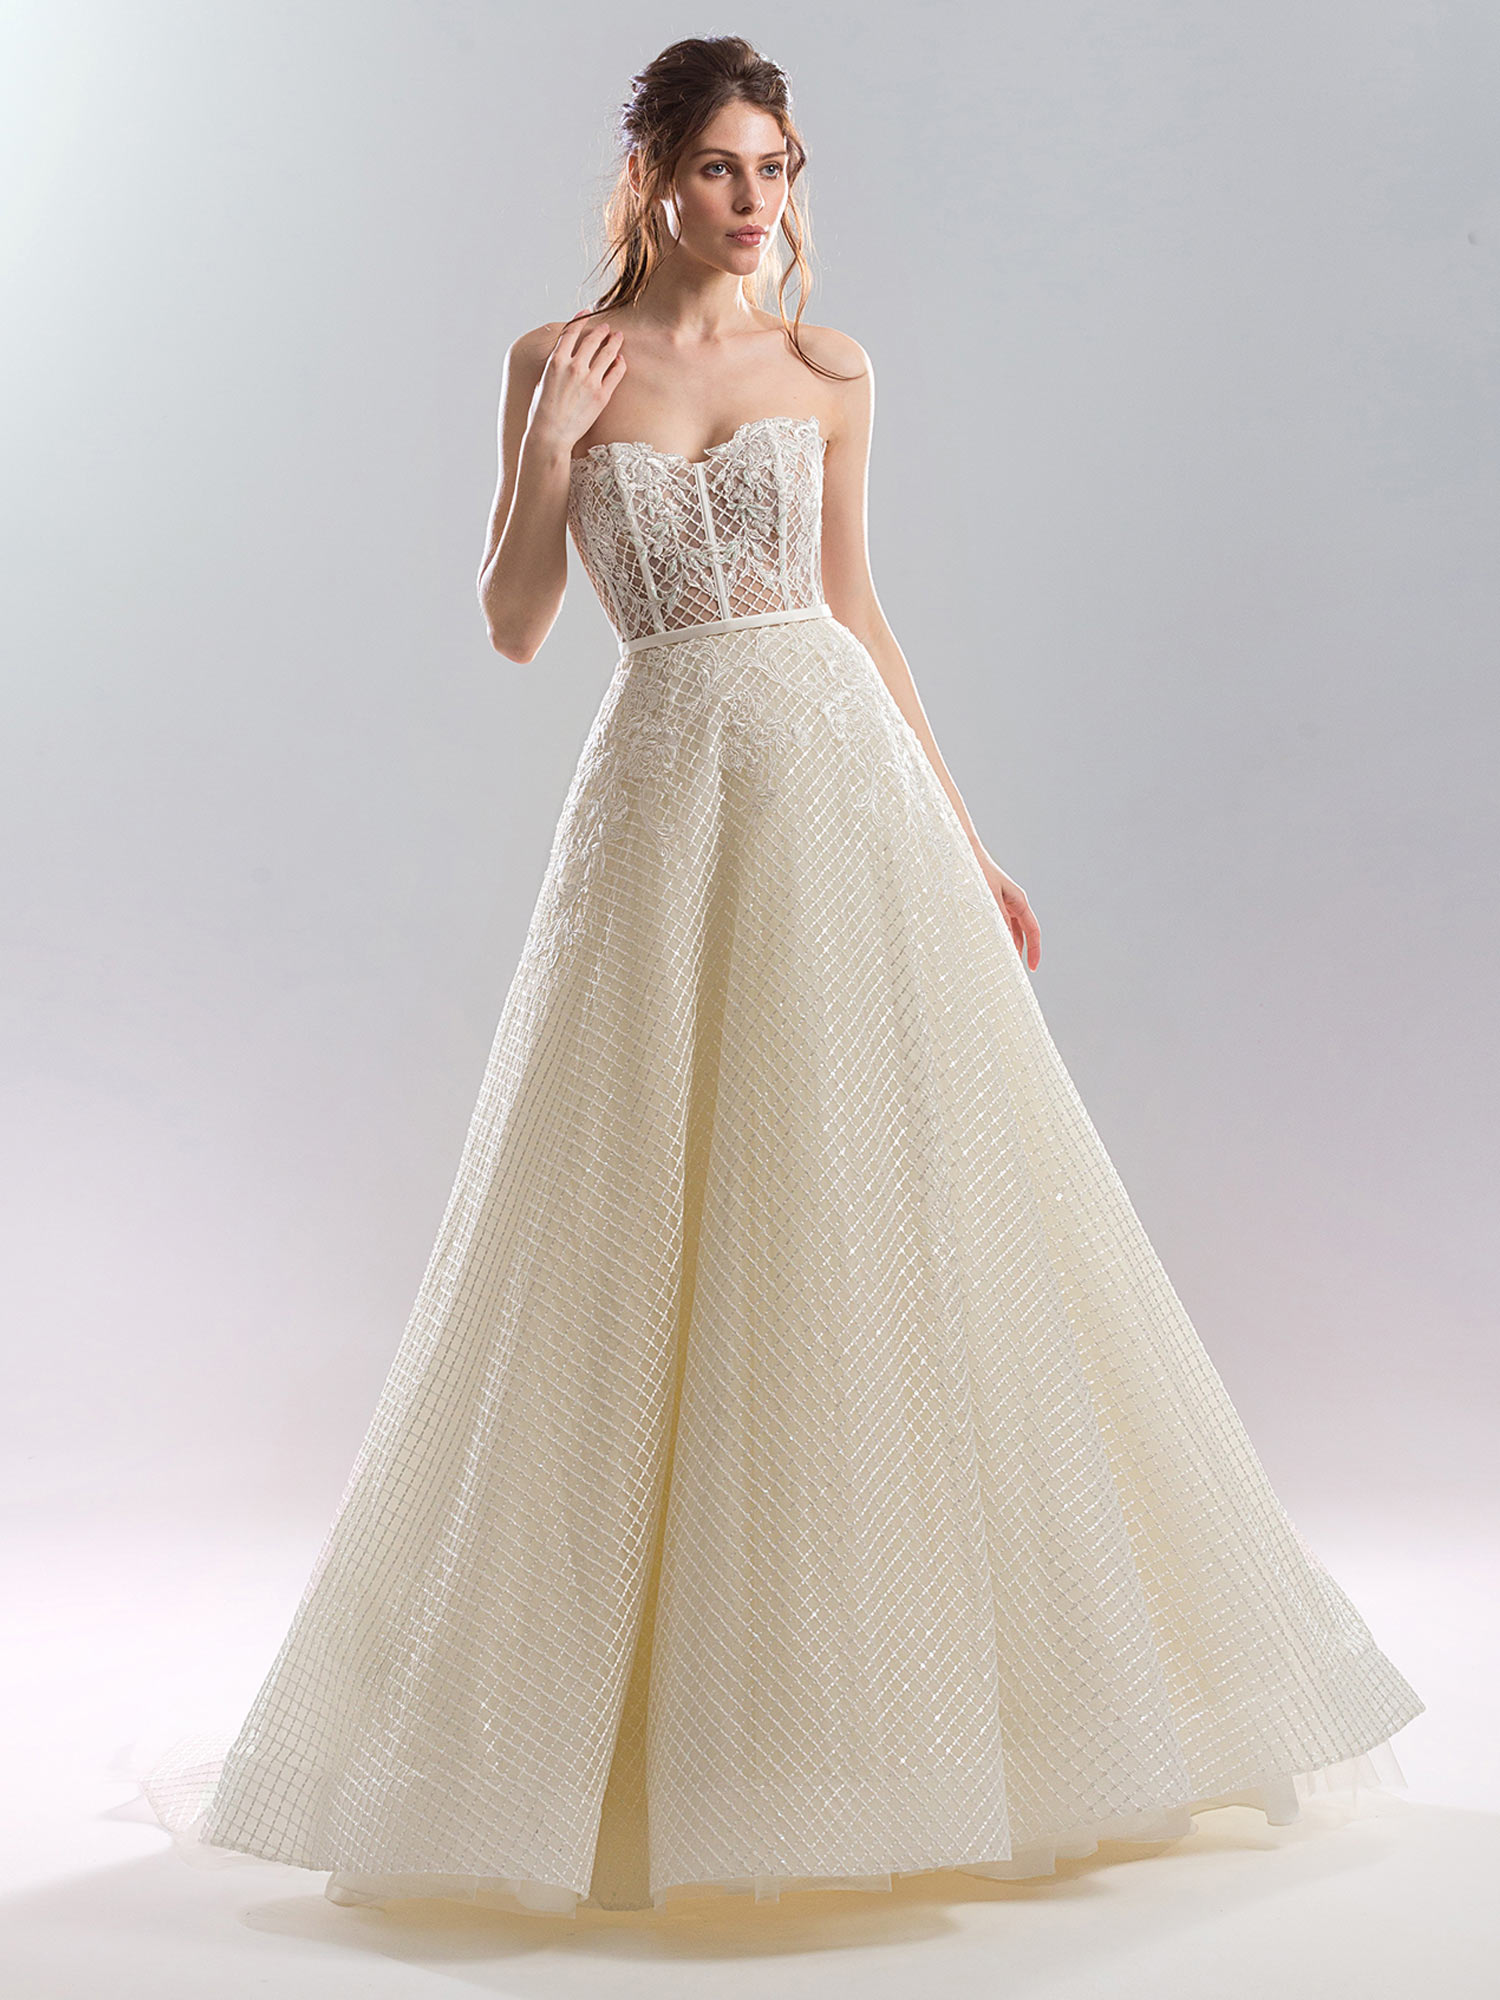 Strapless A Line Wedding Gown With Sheer Bodice And Sequined Fabric